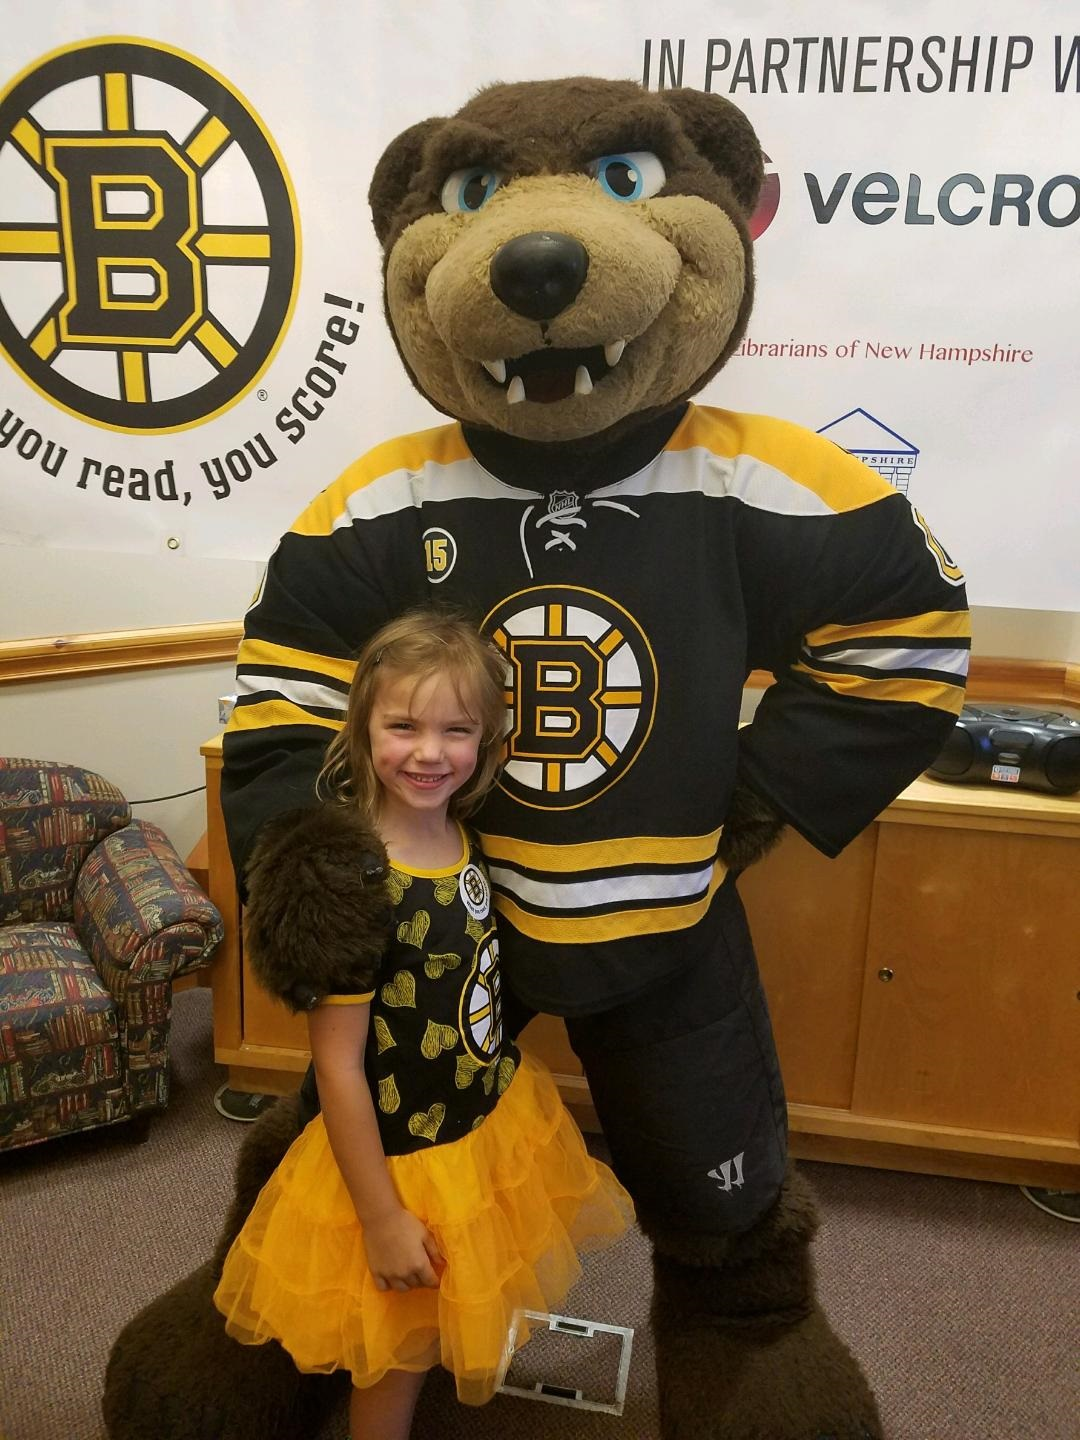 Image Galleries For Lionaid Campaigns: Meet & Greet With Blades, The Bruins Mascot!